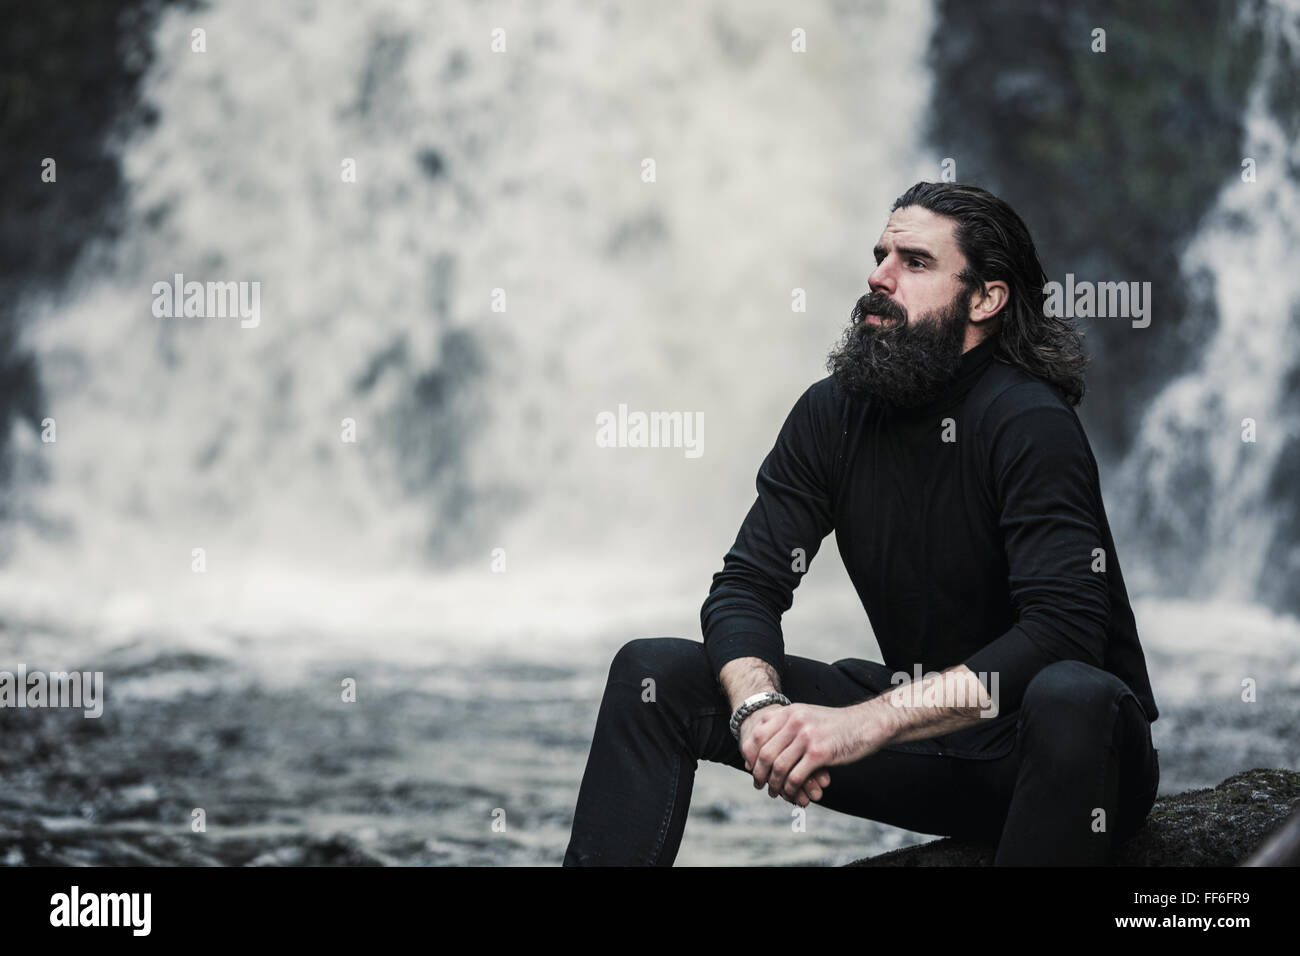 A man sitting with his hands clasped looking up, by a cascade of water, a mountain stream. - Stock Image